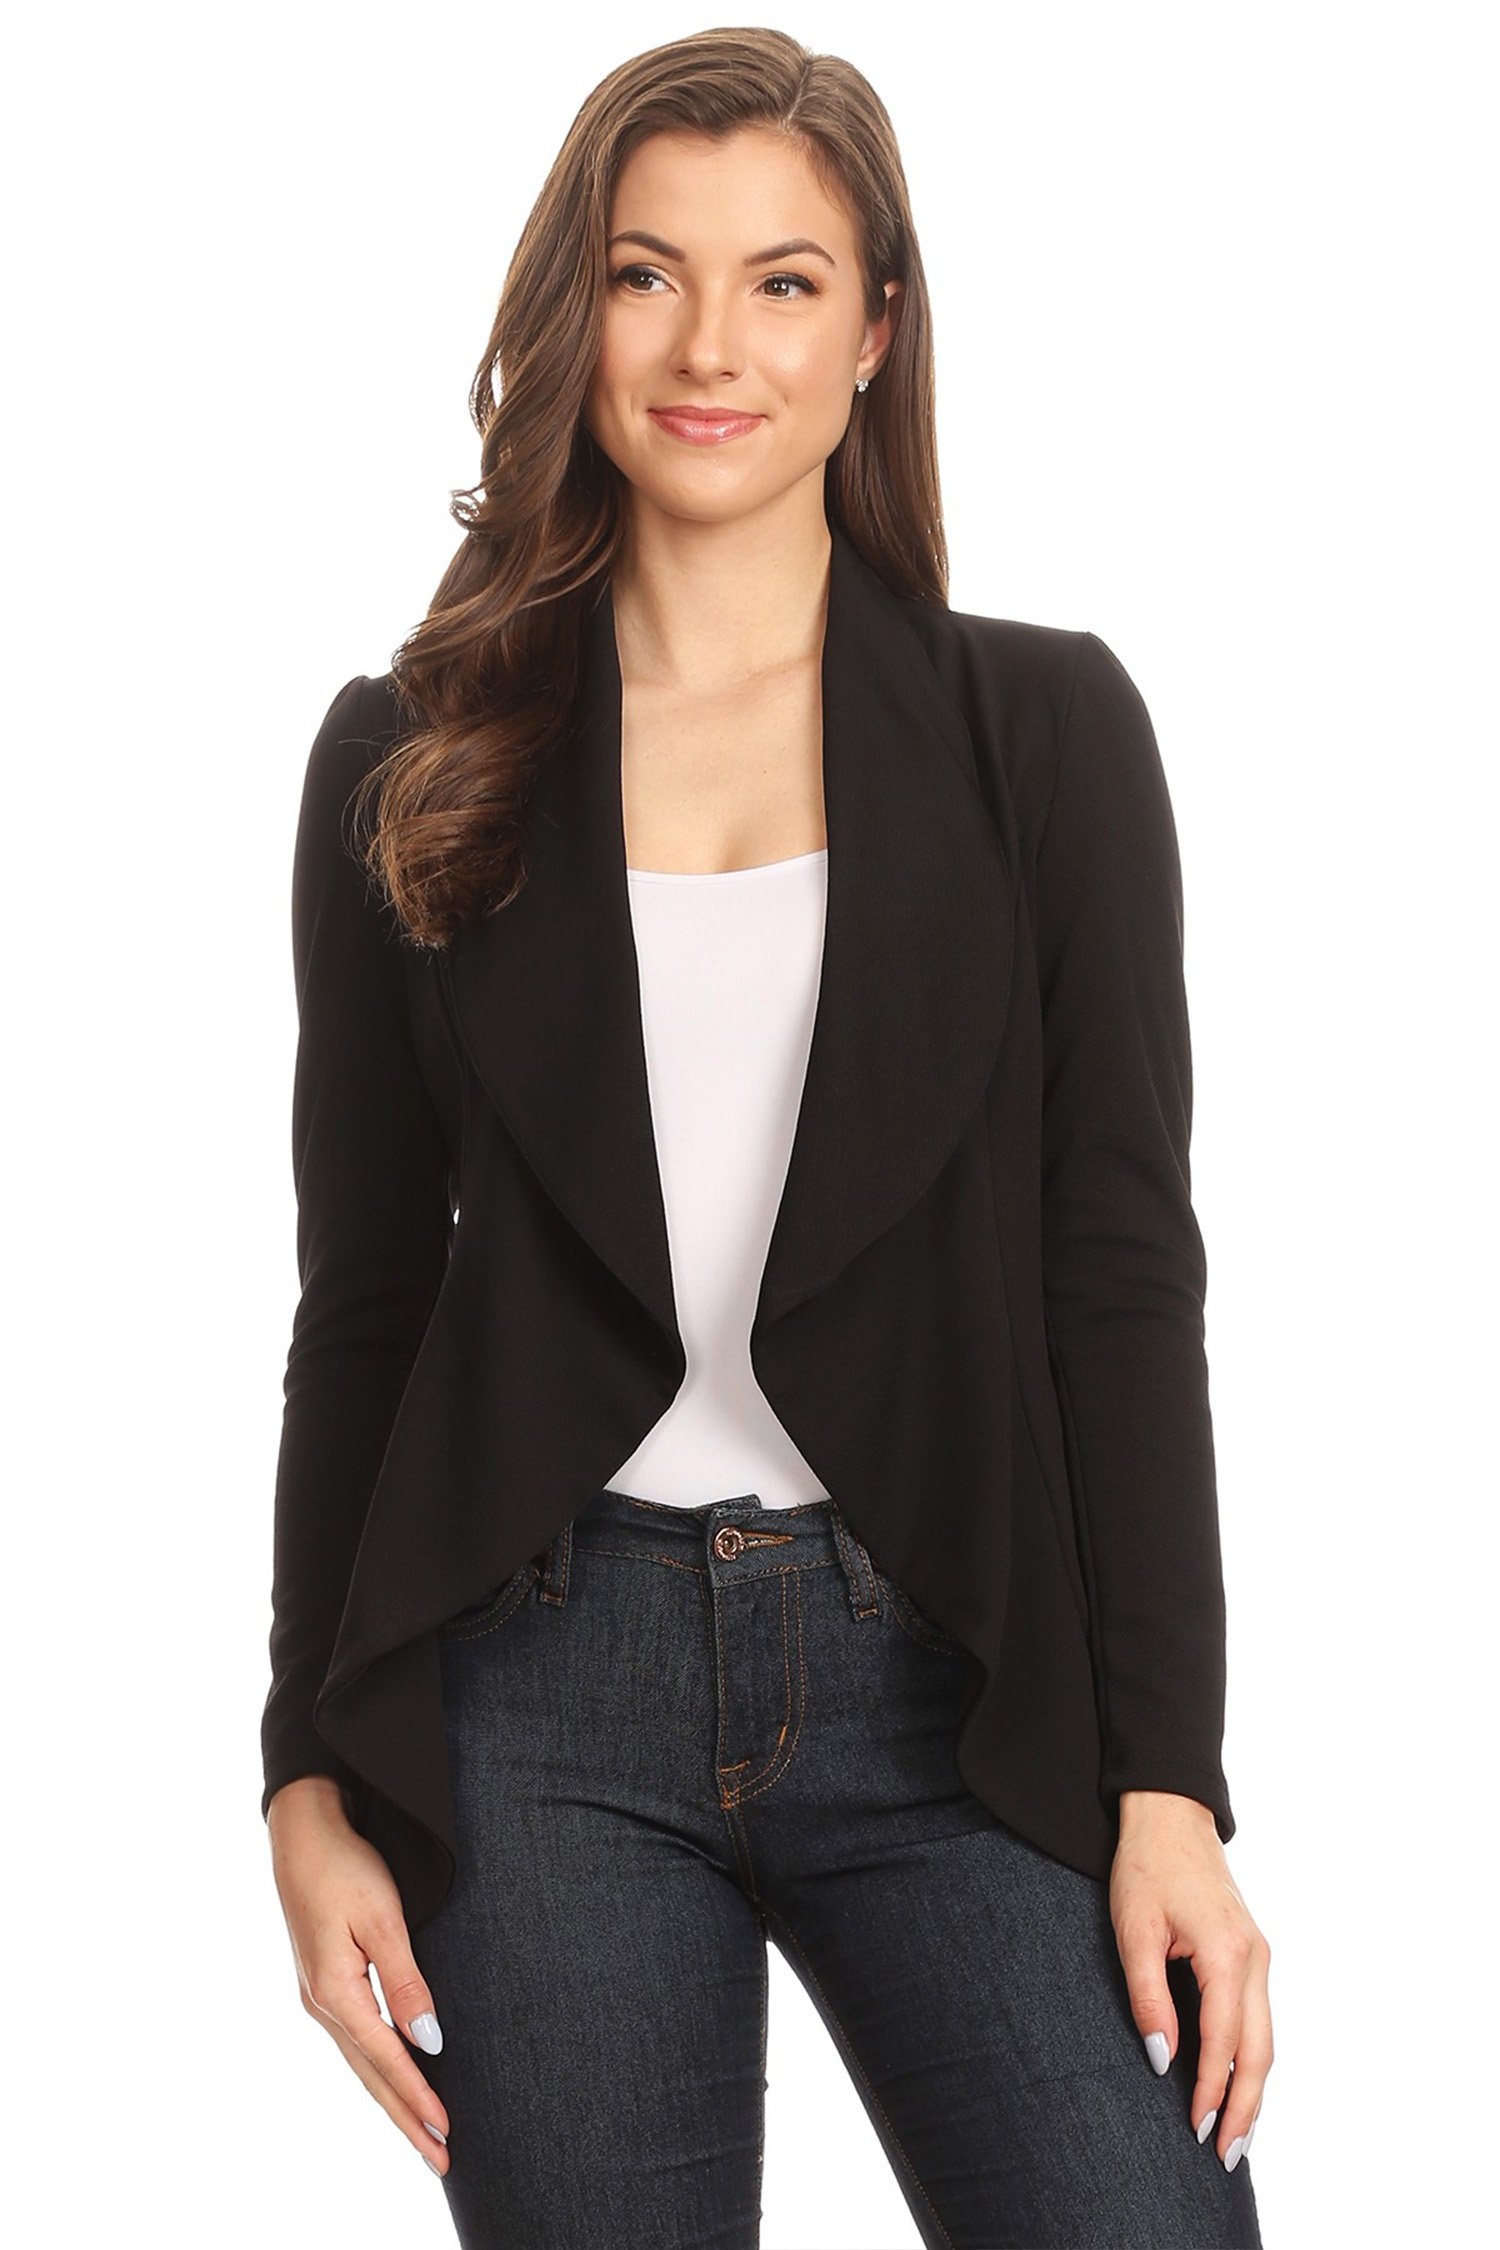 Women's Stretch Long Sleeves Open Front Blazer/Made in USA (S-3XL) Black 3XL